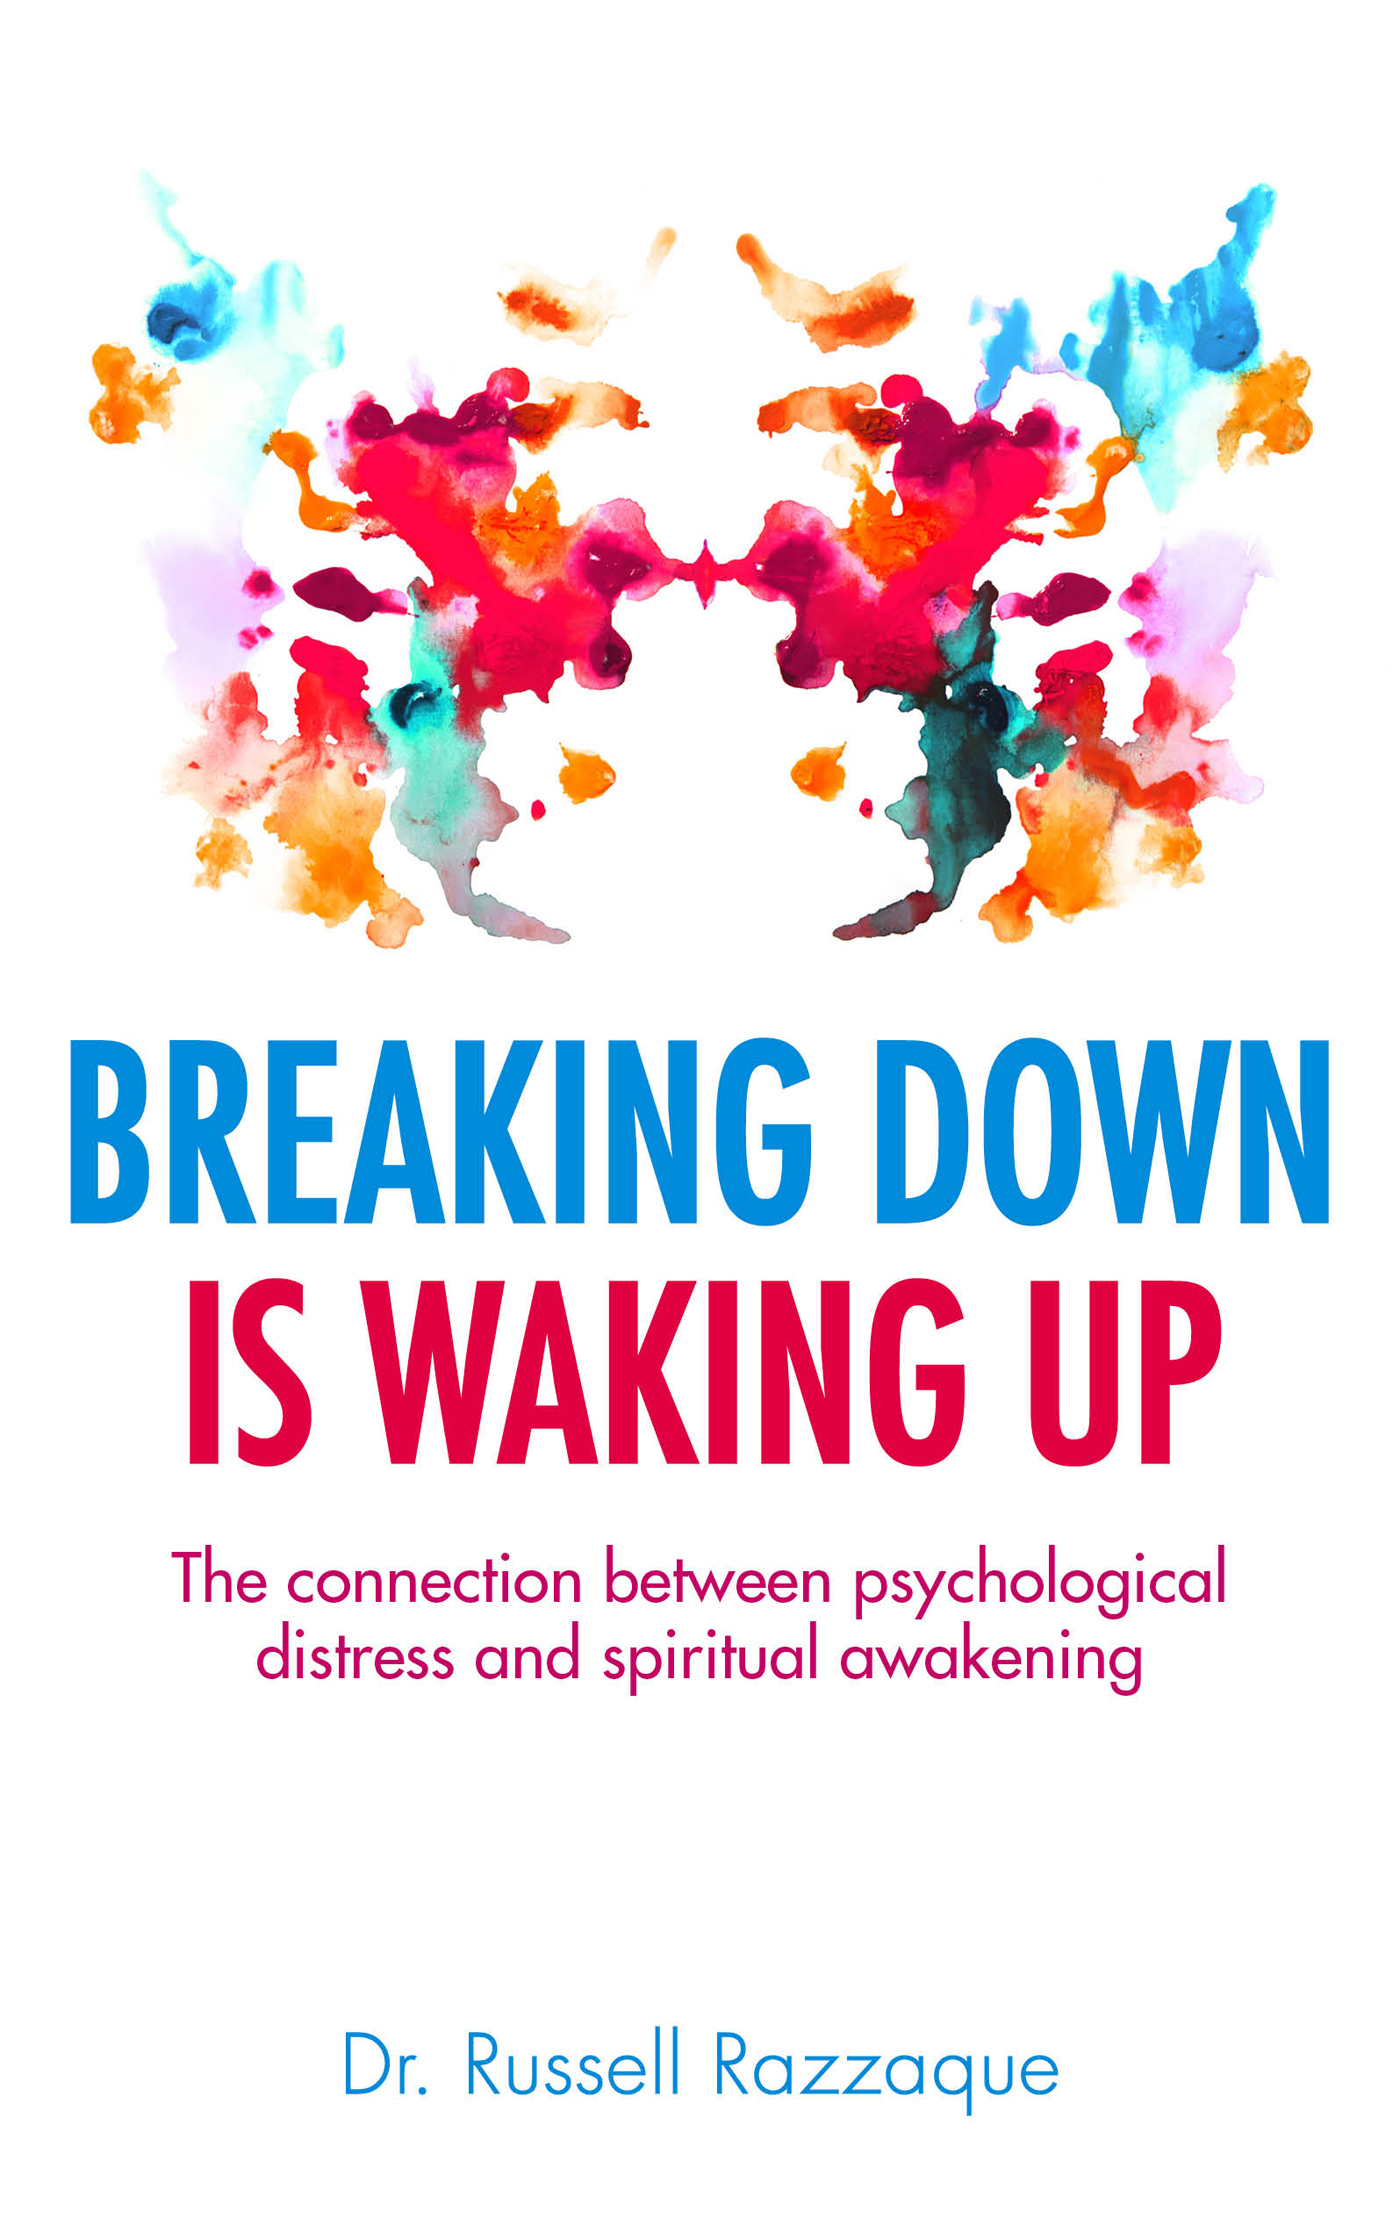 Breaking Down is Waking up: The Connection Between Psychological Distress and Spiritual Awakening